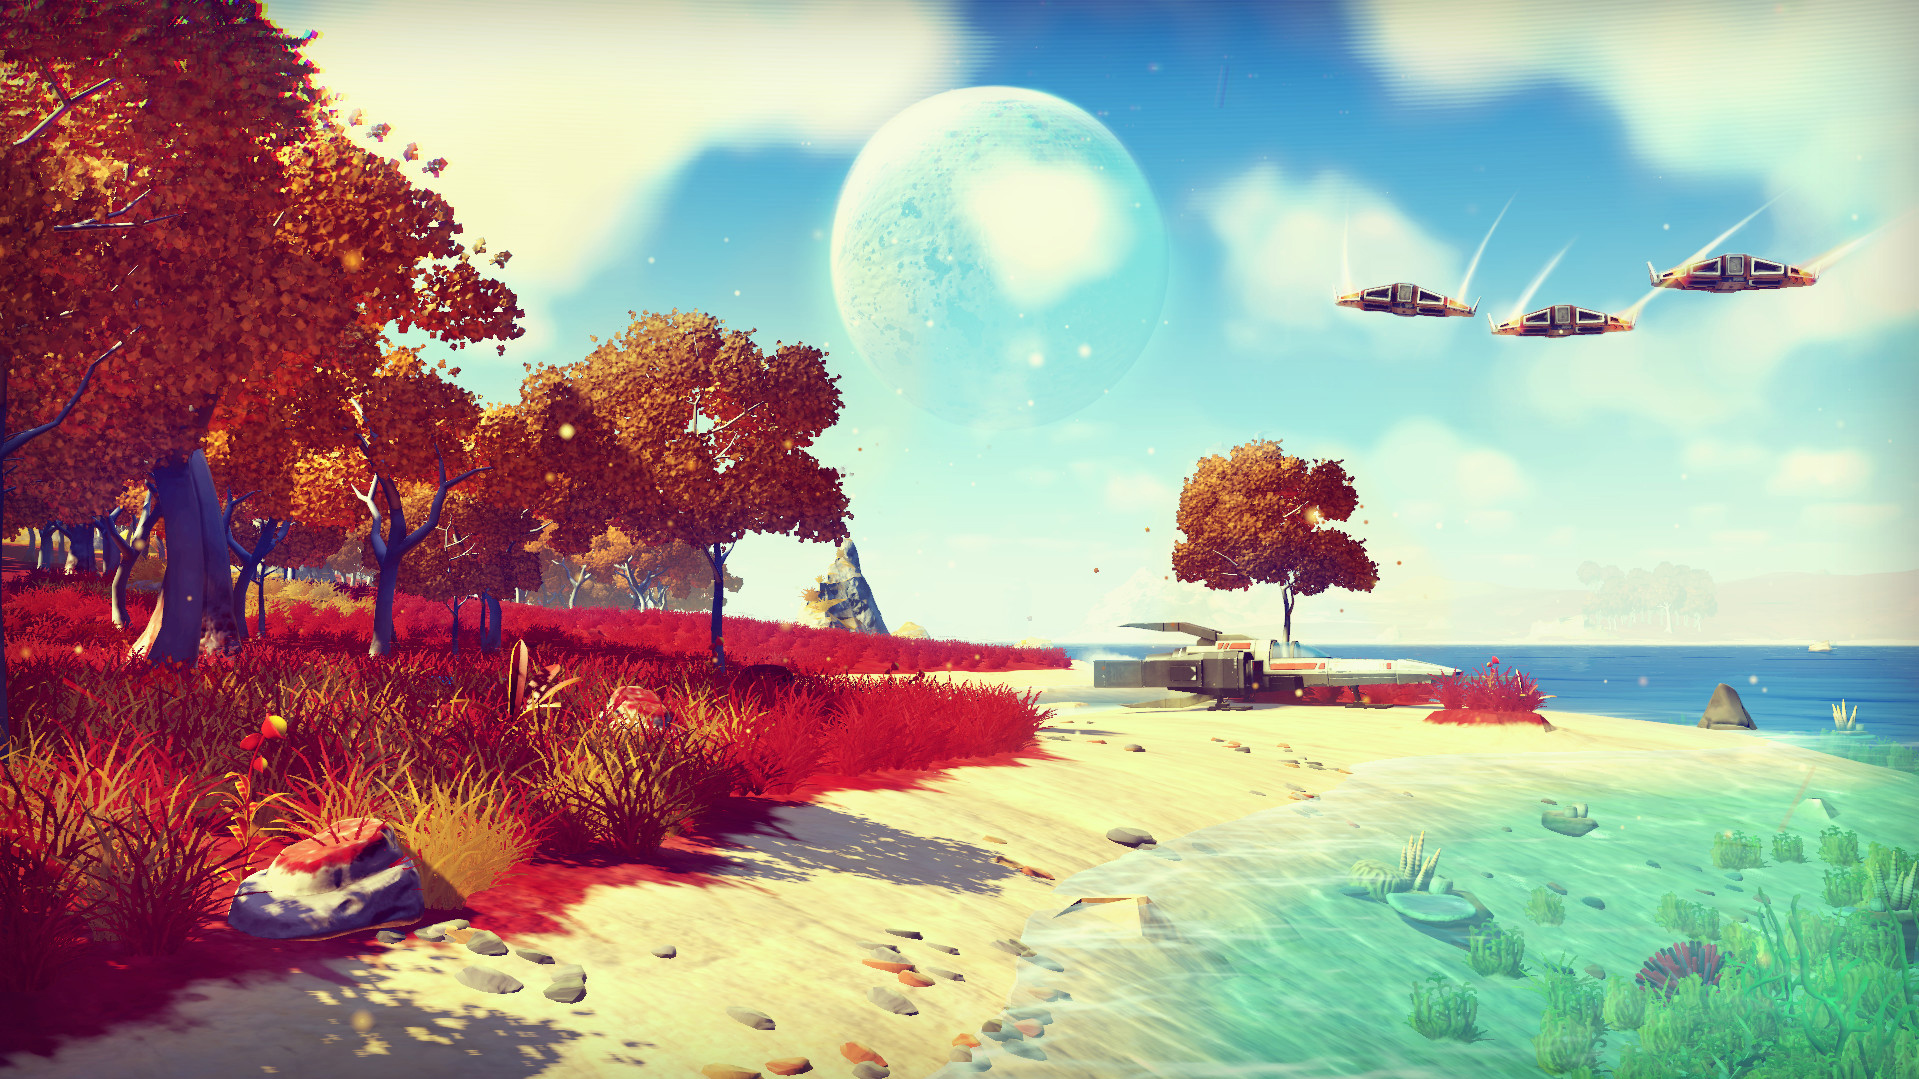 No Man's Sky is coming to Xbox One on July 24 with synchronous co-op screenshot